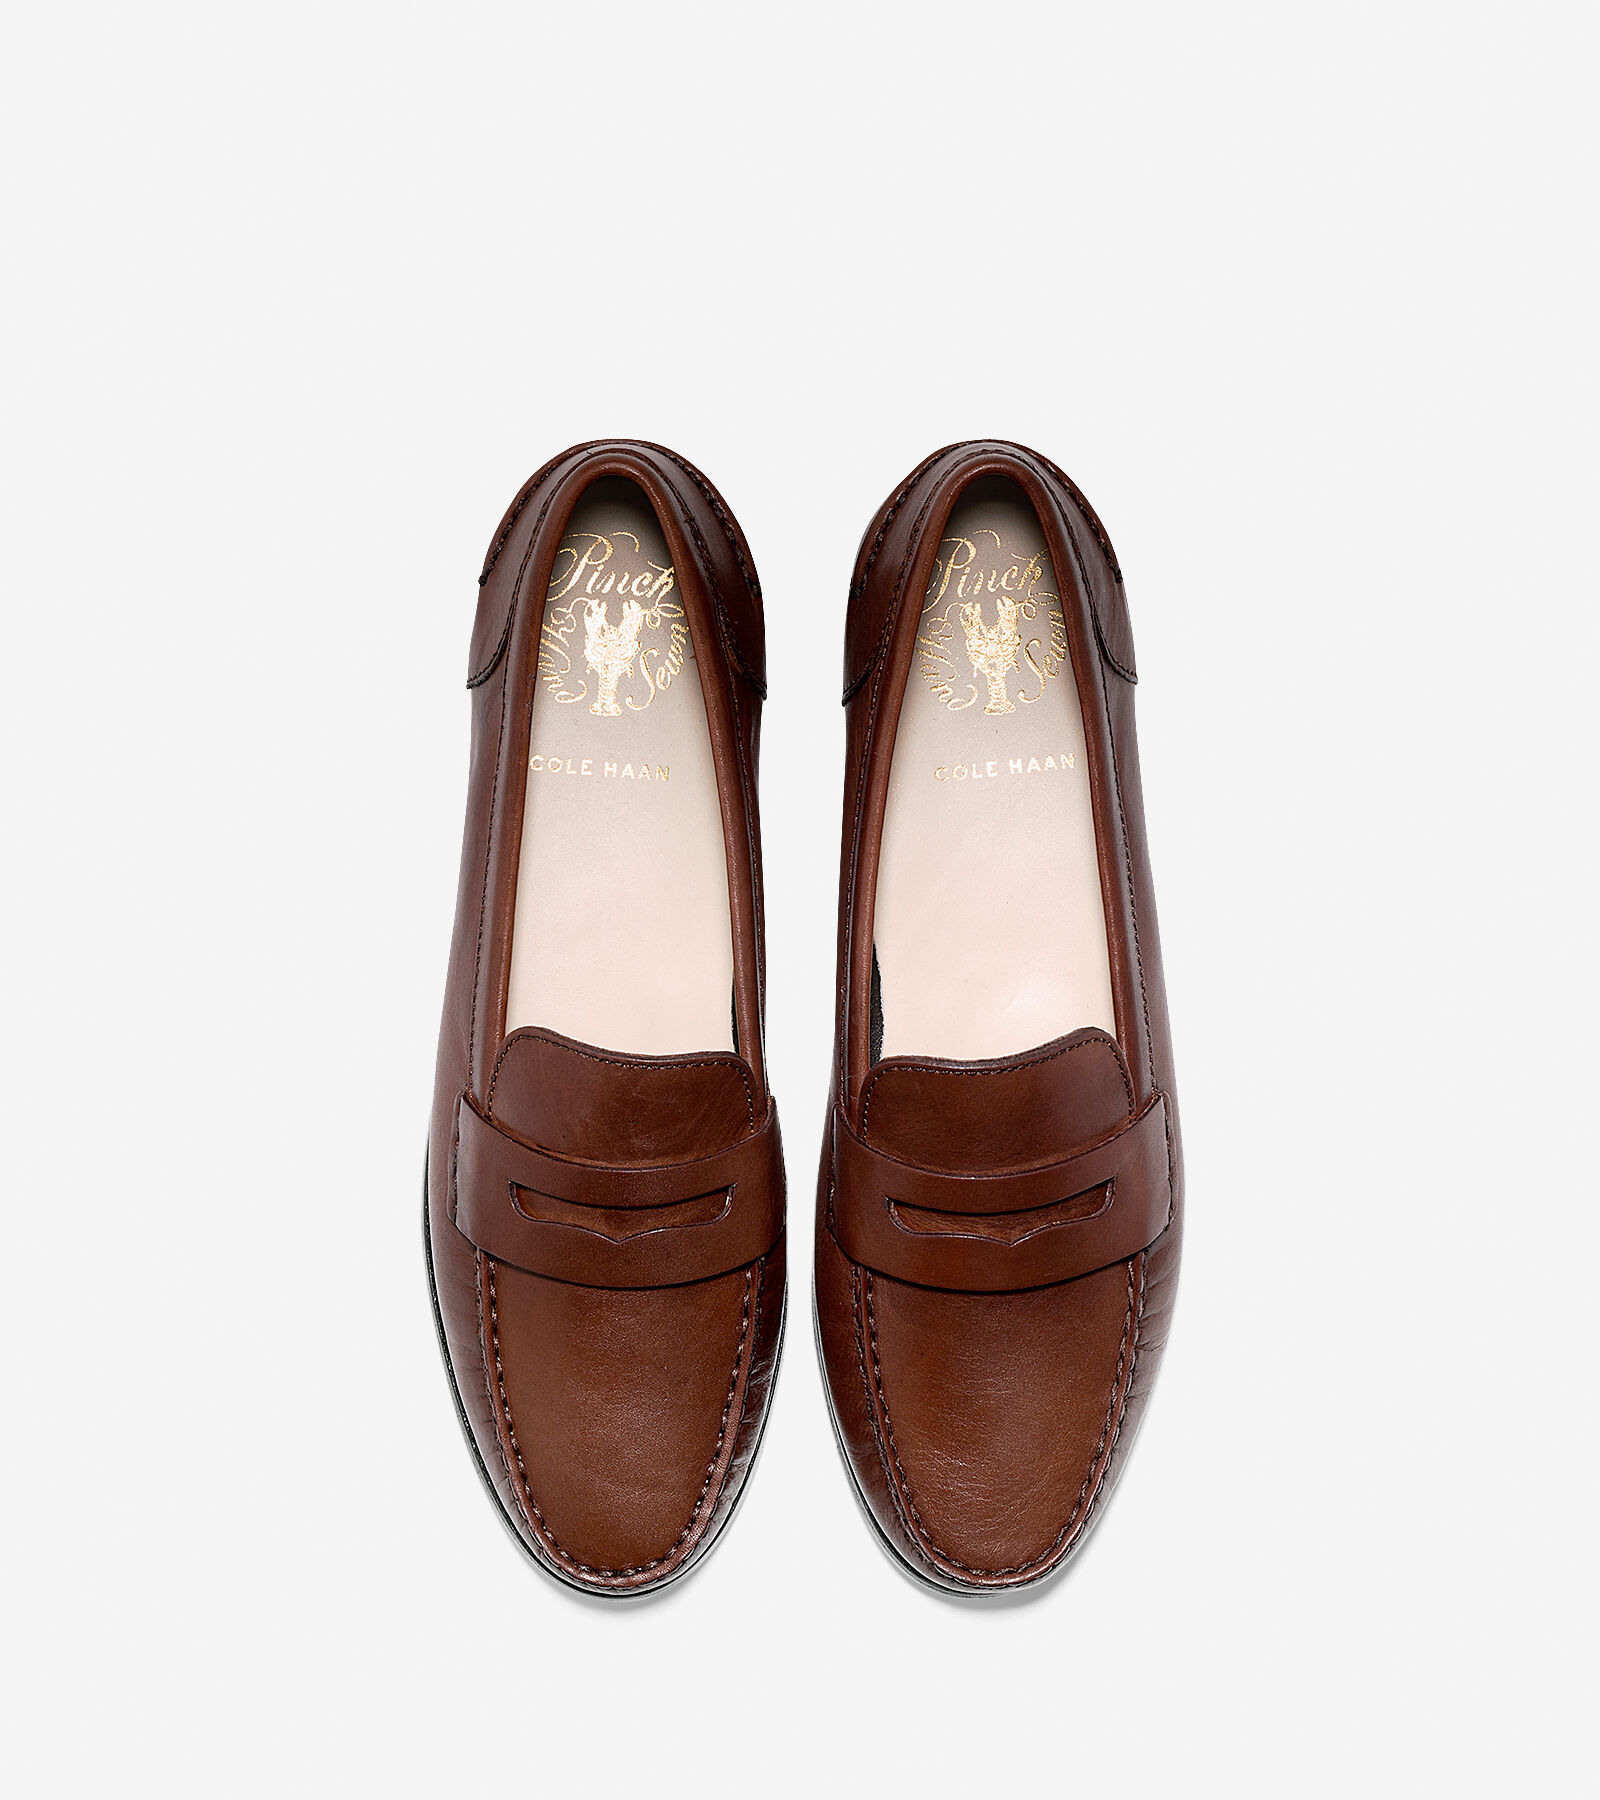 Pinch Grand Penny Loafer in Sequoia